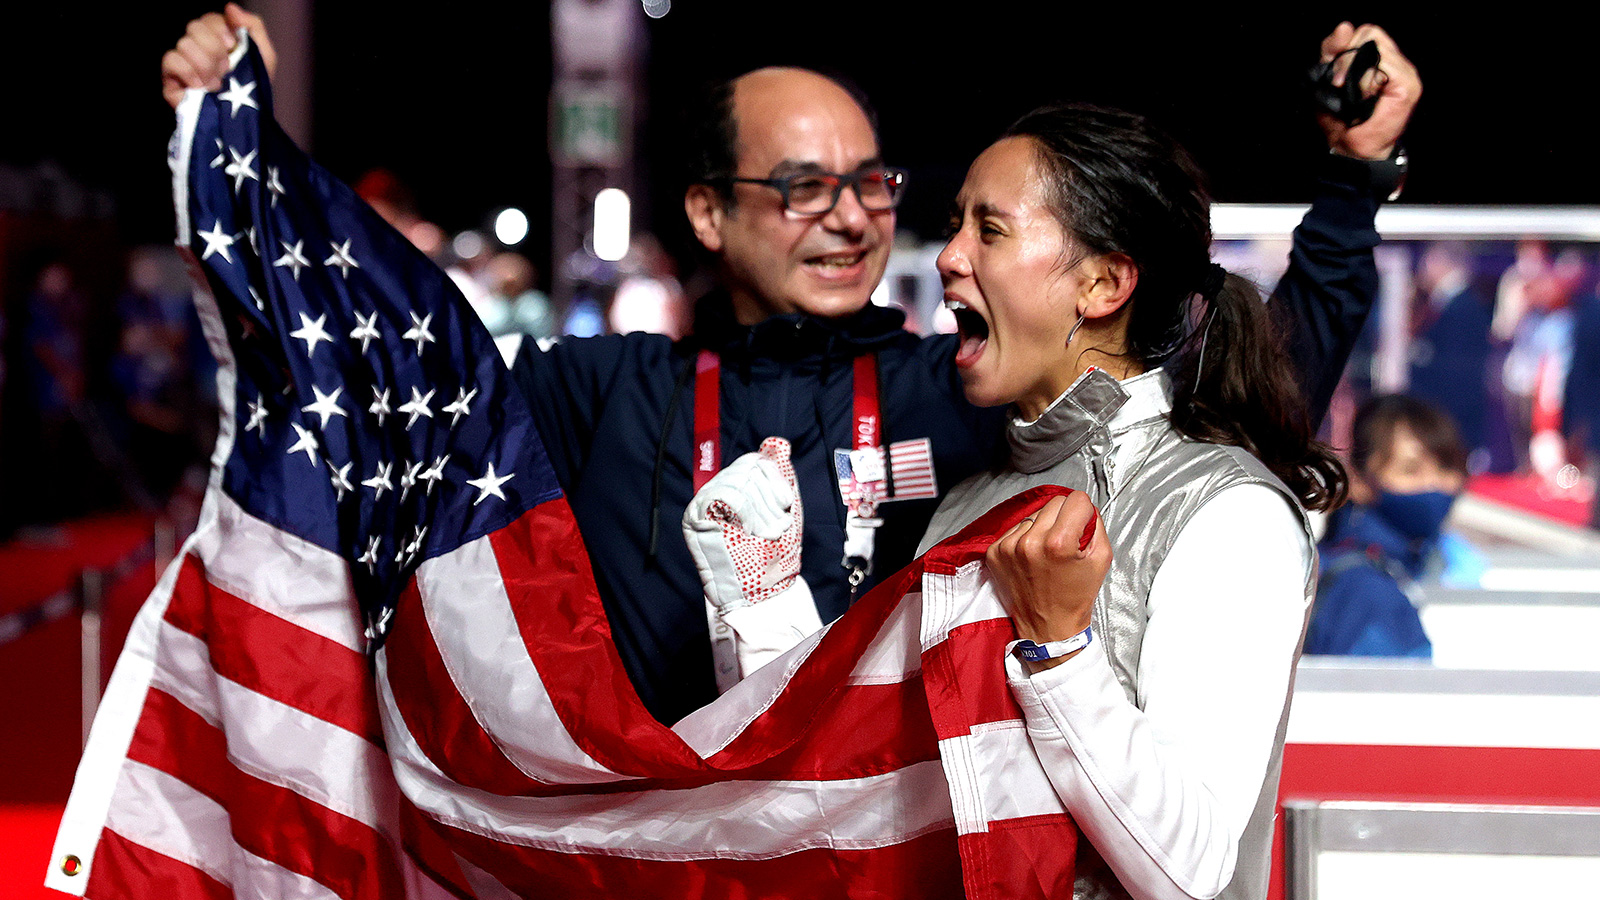 Lee Kiefer of the United States celebrates with her coach after winning gold in fencing against Inna Deriglazova of the Russia Olympic Committee on July 25.